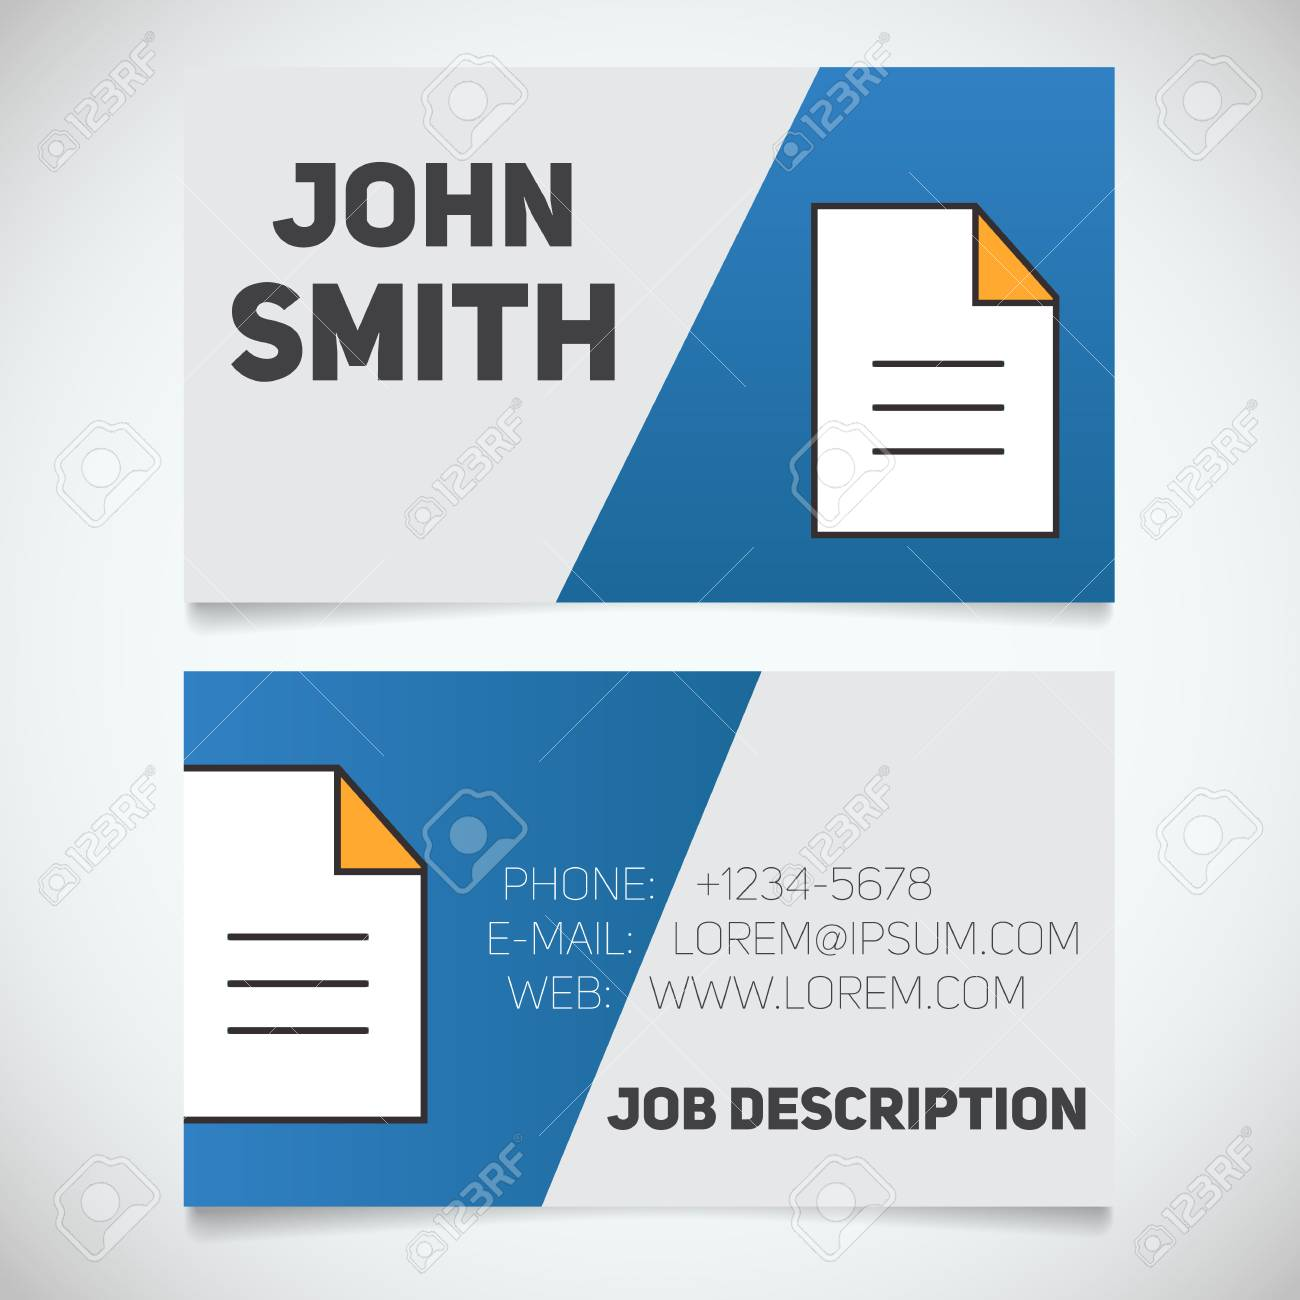 Business card print template with document logo easy edit editor business card print template with document logo easy edit editor writer stationery reheart Image collections